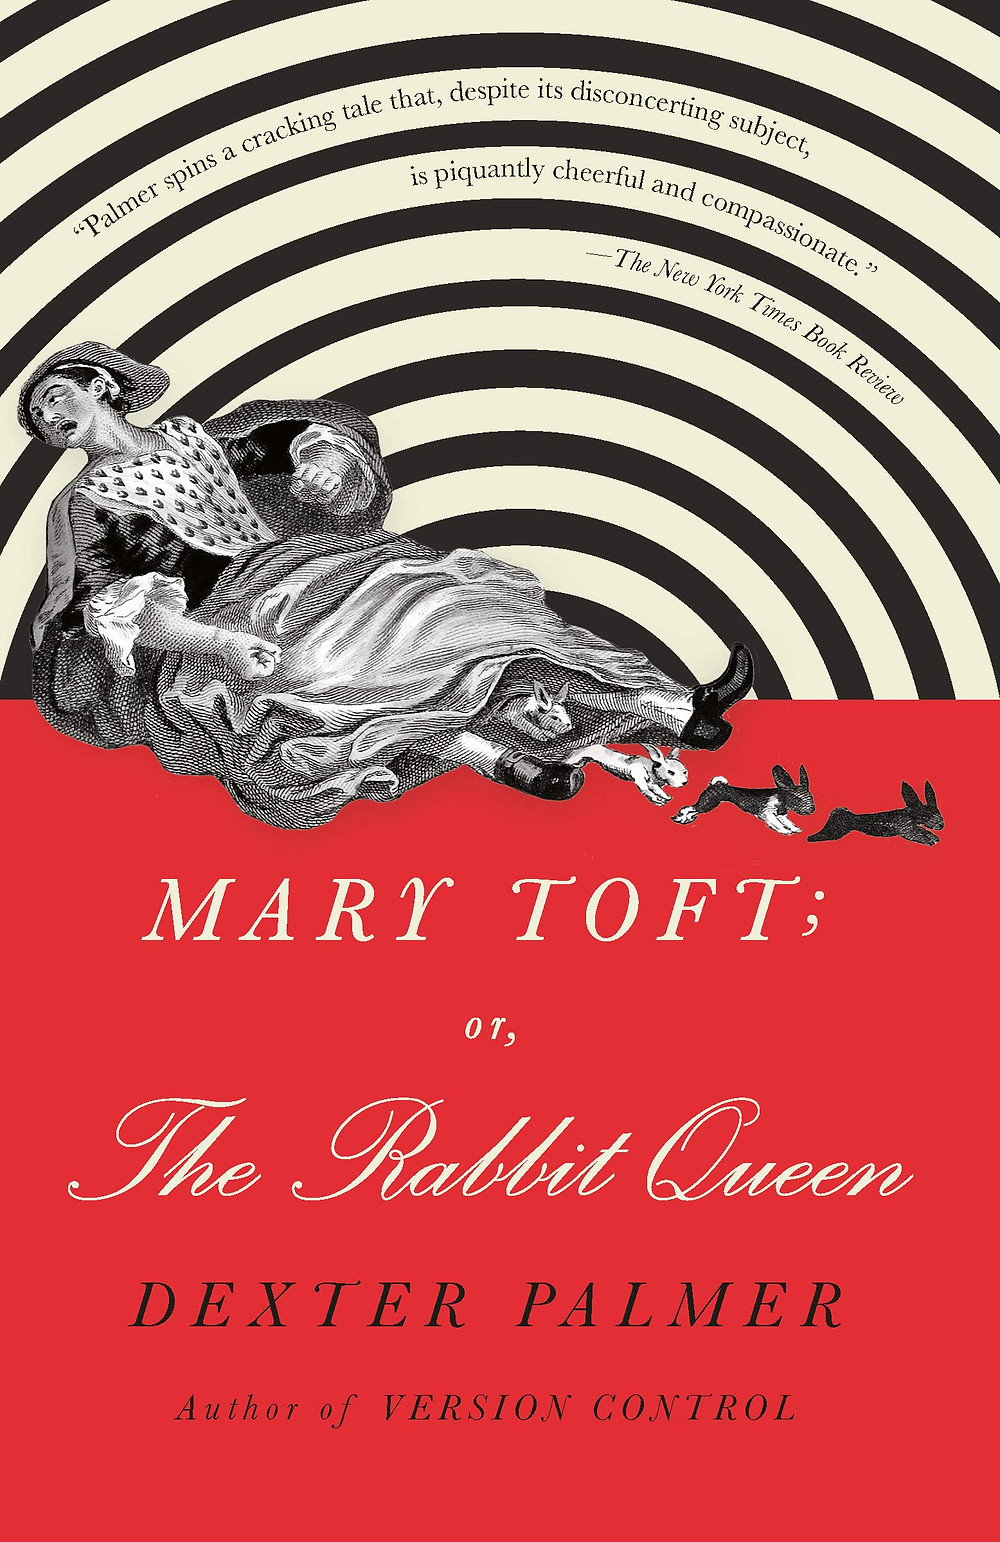 "Mary Toft; Or, the Rabbit Queen Dexter Palmer (Author) The Book Slut book reviews, Friday debrief. Description In 1726, in the town of Godalming, England, a woman confounded the nation's medical community by giving birth to seventeen rabbits. This astonishing true story is the basis for Dexter Palmer's stunning, powerfully evocative new novel. Surgeon's apprentice Zachary Walsh knows that his master, John Howard, prides himself on his rationality. But John cannot explain how or why Mary Toft, the wife of a local journeyman, has managed to give birth to a dead rabbit. When this singular event be-comes a regular occurrence, John and Zach-ary realize that nothing in their experience as rural physicians has prepared them to deal with a situation like this--strange, troubling, and possibly miraculous. John contacts sev-eral of London's finest surgeons, three of whom soon arrive in Godalming to observe, argue, and perhaps use the case to cultivate their own fame. When King George I learns of Mary's plight, she and her doctors are summoned to London, where Zachary experiences a world far removed from his small-town ex-istence and is exposed to some of the dark-est corners of the human soul. All the while Mary lies in bed, as doubts begin to blossom among her caretakers and a growing group of onlookers waits with impatience for an-other birth, another miracle. www.thebookslut.com Publisher Pantheon Books Publish Date November 19, 2019 Pages 336 Dimensions 6.25 X 0.88 X 9.25 inches | 1.5 pounds Language English Type Hardcover EAN/UPC 9781101871935 BISAC Categories: Historical - General. bookslut, About the Author DEXTER PALMER is the author of two previous novels: Version Control, which was selected as one of the best novels of 2016 by GQ, the San Francisco Chronicle, and other publications, and The Dream of Per-petual Motion, which was selected as one of the best fiction debuts of 2010 by Kirkus Re-views. He lives in Princeton, New Jersey. Reviews ""Palmer spins a cracking tale that, despite its disconcerting subject, is piquantly cheerful and compassionate . . . With empathy and imagination, Palmer explores the master/apprentice relationship, first love and first rivalry, spite and kindness: conjuring a world to raise a wry smile . . . Palmer is paying Mary the compliment of complexity . . . She is a woman whose story, both happily and unhappily, is rather more than the sum of its rabbit parts.""  --Katharine Grant, The New York Times Book Review ""[Palmer] takes a daring narrative leap: He tells the story not from Mary's perspective, but from the point of view of Zachary Walsh, a fourteen-year-old apprentice to the real-life figure of John Howard, a local surgeon in Godalming who helped discover Mary Toft and bring her to prominence . . . From there, Palmer's impeccable research kicks in . . . Where there are gaps or fuzzy areas in the actual history of Mary Toft, Palmer fills in the illustration with lush detail, vivid characterization -- and most importantly, philosophy . . . Epistemology is a big pill to swallow in a work of historical fiction, but Palmer coats it with sure storytelling, a compelling voice in the form of Zachary, and a gripping mystery at the core of the story . . . Palmer has always been a novelist of big ideas, and Mary Toft is his most thoughtful work yet."" --Jason Heller, NPR  ""Dexter Palmer's Mary Toft; or, the Rabbit Queen brings the past to life with authenticity and unexpected relevance . . . A zesty blend of bawdy entertainment and thoughtful coming-of-age story, Mary Toft tantalizes the contemporary conscious as its truth-seeking characters wade through truth-defying circumstances."" --Mari Carlson, Bookpage  ""Mary Toft; or, The Rabbit Queen serves as a reminder that the issues that dictate -- and sometimes define -- our lives can often be as complex as the very people attempting to solve them . . . The language Palmer uses feels just as meticulous as the surgeries Howard and Zachary perform. This kind of thoughtful, detailed approach in the writing style feels necessary for a novel of such magnitude . . . I imagine the term 'audacious' will be used often regarding Palmer's newest work. Such a word is certainly fitting. Dexter Palmer is a bold and daring writer, and Mary Toft; or, The Rabbit Queen is a novel that captures his voice at its very best.""  --Bradley Sides, The Chicago Review of Books ""Vivid, sensitive . . . The novel lingers on those who are most torn; those who, like me, want to test their capacity for belief. These confused characters, especially Mary's 'man-midwife, ' John Howard, become vehicles through which Palmer asks the novel's central question: Why would anyone believe a woman who claimed she was giving birth to rabbits? . . . Rather than mock John's credulity, though, Palmer treats his ""man-midwife"" with respect."" --Lily Meyer, The Atlantic ""Mr. Palmer hews closely to historical records, a reasonable decision when history is this insane."" --Sam Sacks, Wall Street Journal  ""[A] frolicsome period comedy."" --The New Yorker ""This gripping, well-written novel is a wonder of characterization . . . Faith and science, uneducated villagers and London's aristocratic elite, this novel plumbs the spectrum to offer an immersion in the world of the burgeoning Enlightenment. A fascinating, propulsive read from beginning to end, this is a stimulating novel of ideas and imagination."" --Bethany Latham, Historical Novel Review  ""Sharp, droll, and actually fairly profound in its observations about human experience, and the nature of belief. I can't wait for the work day to be over so I can get back to reading it."" --Emily Temple, LitHub  ""A suspenseful, thought-provoking narrative that pairs well with dystopian fiction such as The Handmaid's Tale."" --Shelf Awareness ""A brilliant work . . . Like the historical fiction of Hillary Mantel or Caryl Phillips, Palmer does not shy away from the depravity of the past. Expertly utilizing an actual bizarre historical event to explore faith, reason, and the foundations of our current economic system, this exhaustively researched and dexterously constructed novel is another triumph to add to Palmer's incredibly diverse corpus of works."" --Booklist (starred review)  ""Palmer brilliantly fictionalizes the true story of Mary Toft . . . [He] evocatively captures the period . . . But more impressive are the novel's inquiries into the human concerns of wonder, denial, and belief. . . Palmer skillfully and rewardingly delves into the humanity at the heart of this true historical oddity."" --Publishers Weekly  ""Deft, droll, and provocatively philosophical . . . A novel that attempts to illuminate 'the slippery nature of truth, ' when everything from God to reality is up for grabs."" --Kirkus Reviews (starred review)  ""A beautifully written, slyly profound meditation on perception and reality. I relished each immersive scene, each detail. I wanted to sit and discuss with the characters their beliefs about the world. Reading it, I was torn between wanting to gobble it all up quickly or savor it over time.""  --Nicole Galland, author of I, Iago ""Mary Toft is wonderful! The kind of novel that you want to read and then discuss with other readers. But then Dexter Palmer is a writer like Hilary Mantel or Kate Atkinson, able to move between genres and time periods, by virtue of the almost supernatural sympathy he is able to invoke for his characters and the sense of the worlds they inhabit."" --Kelly Link, author of Get in Trouble  ""Mary Toft; or, The Rabbit Queen is provoking in ways that reach well beyond the premise, anticipating as it does our own 'world of ash, ' with all its spectacle, factionalism, and noise. It is vividly composed and audaciously imagined, filled with characters who do battle against a world that perceives them as strange--or who, conversely, assume strangeness as a mask in order to induce the world to see them at all. It is yet another wonder in Dexter Palmer's cabinet of wonders."" --Kevin Brockmeier, author of The Brief History of the Dead. thebookslut.com"